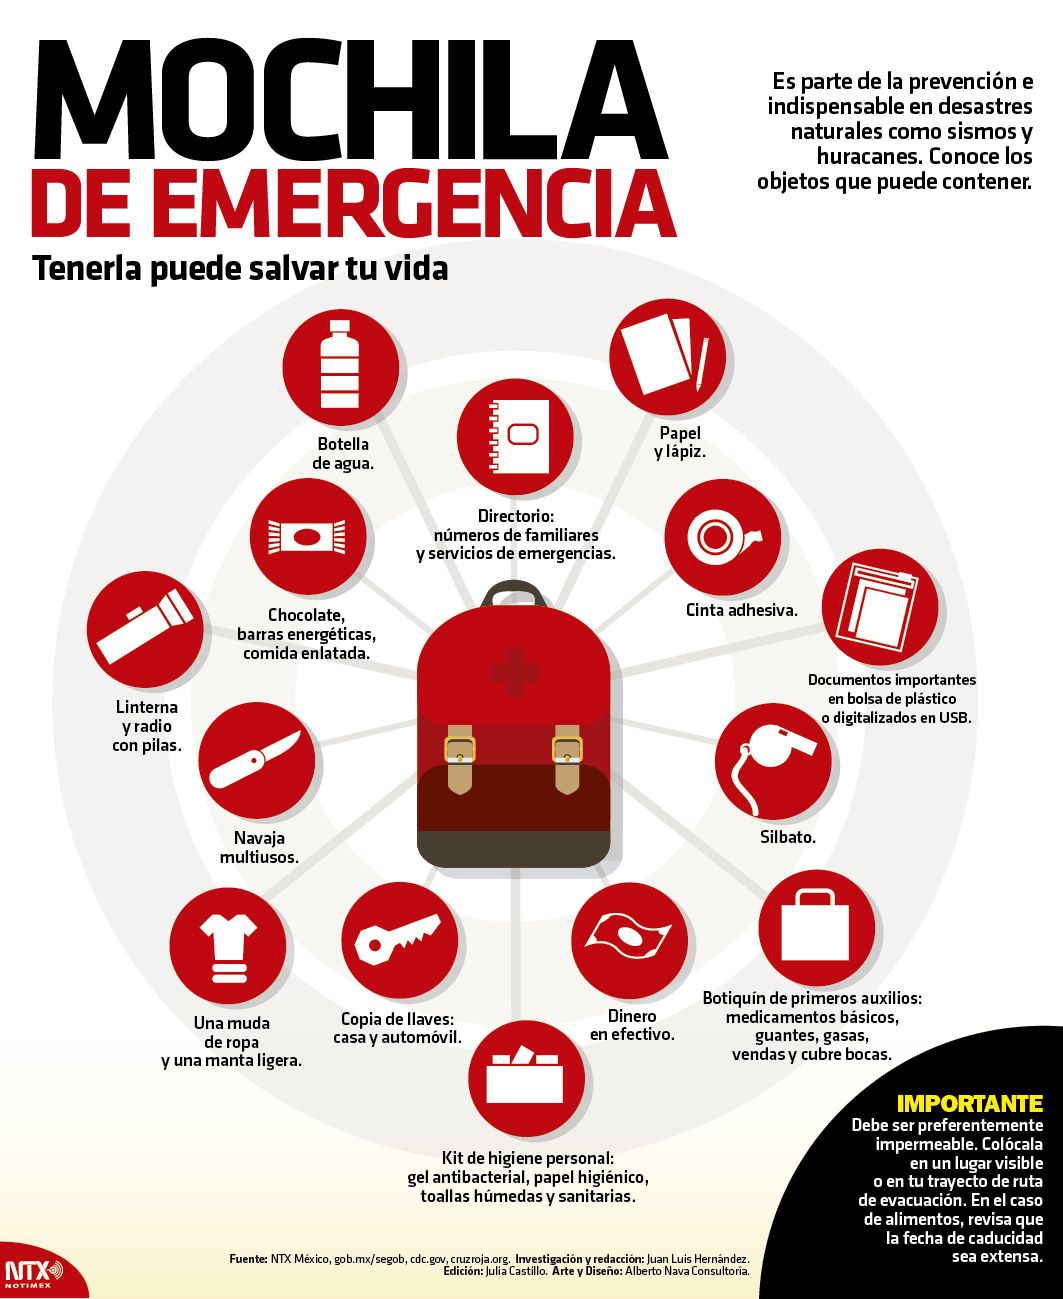 Conoces Los Objetos Indispensables Que Conforman Una Mochila De Emergencia Infografiantx Salvaguarda Tu Integr Survival Tips Body Healing Survival Skills